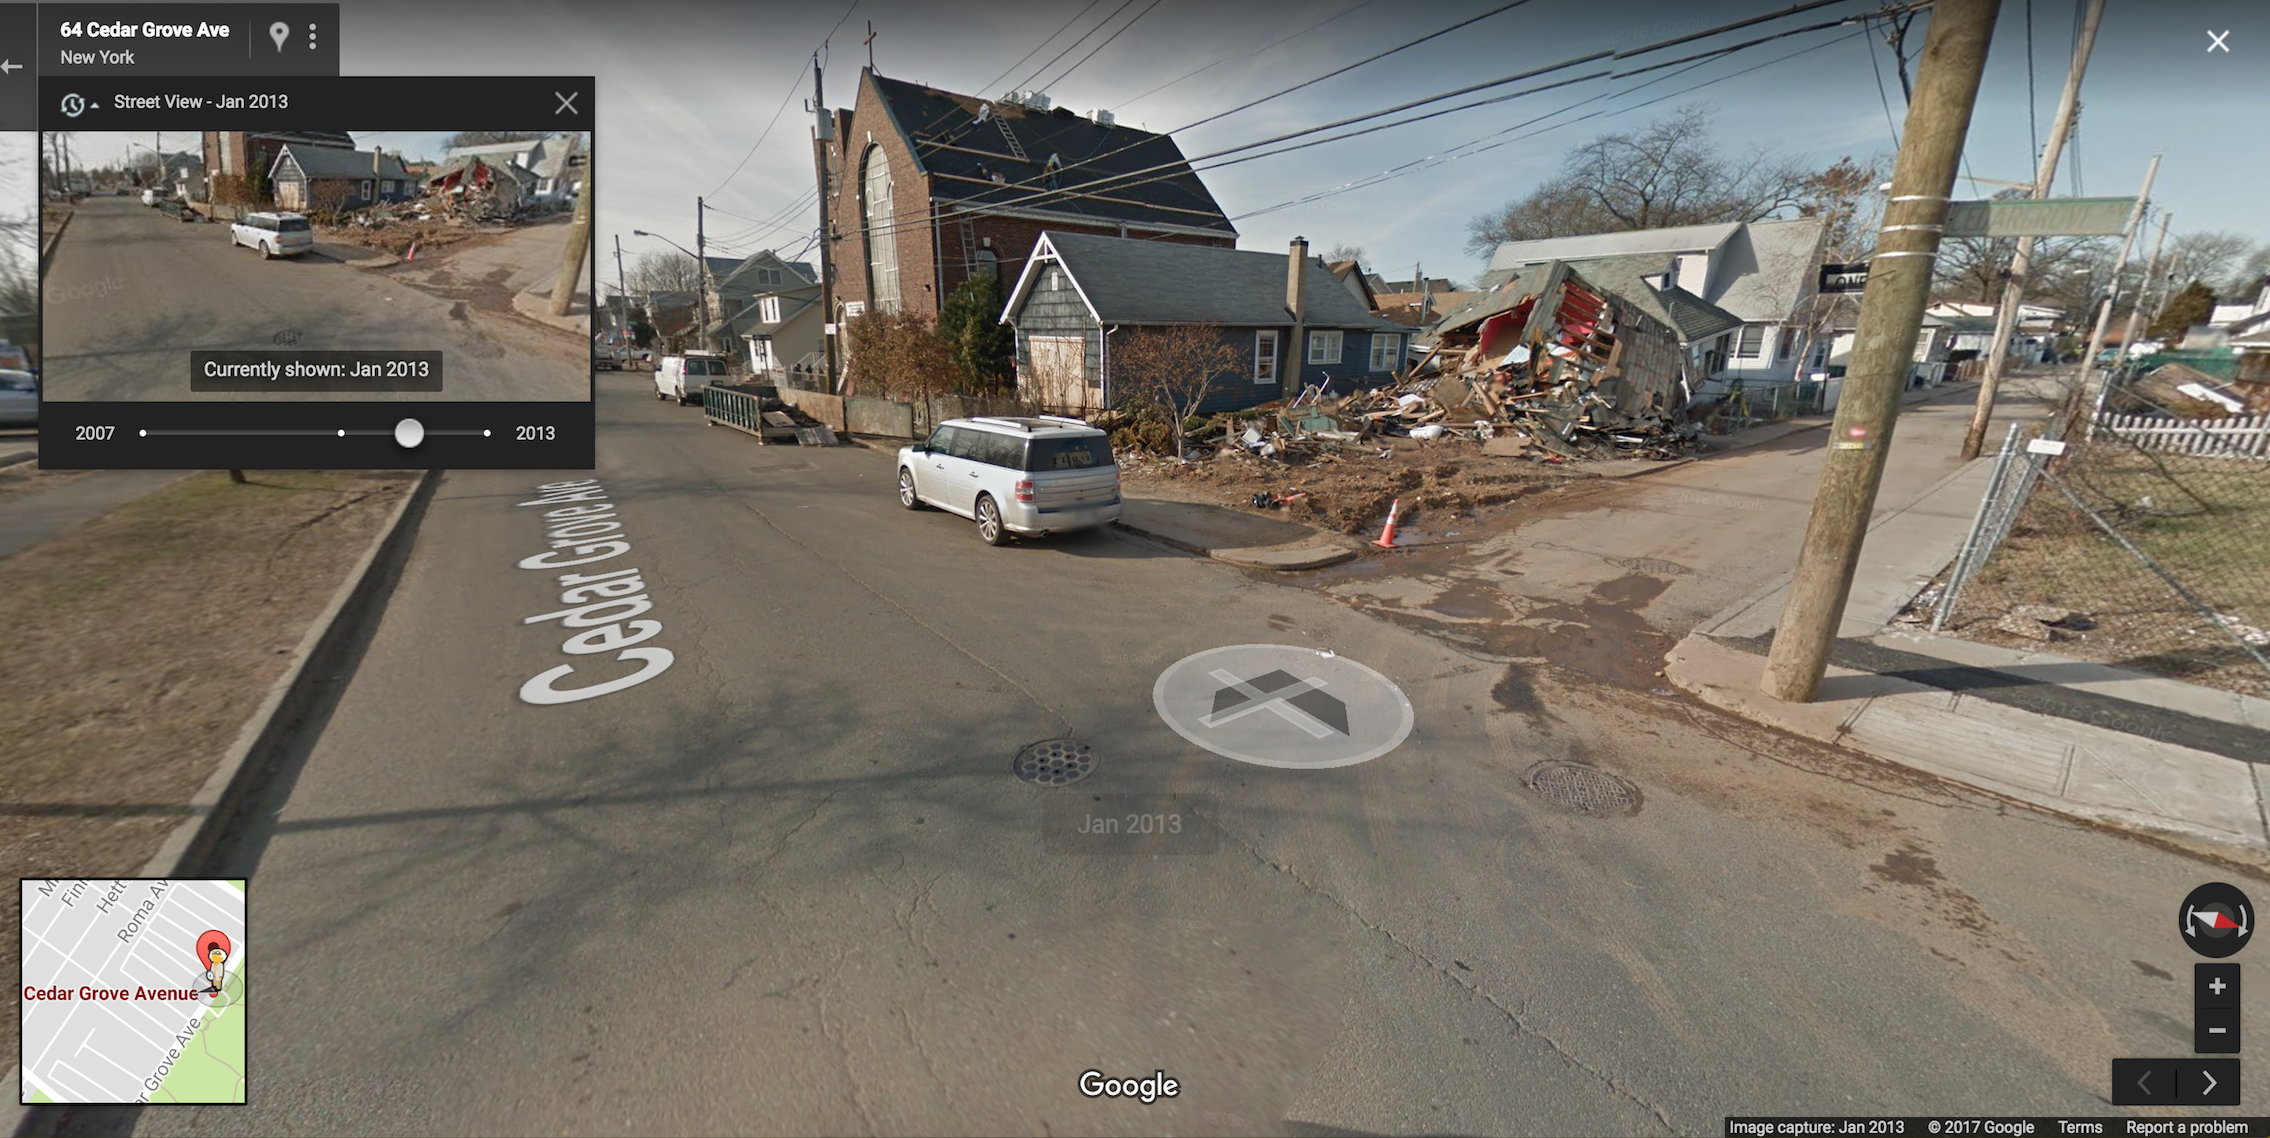 8 Wild Google Street View Images of New York City | Inverse